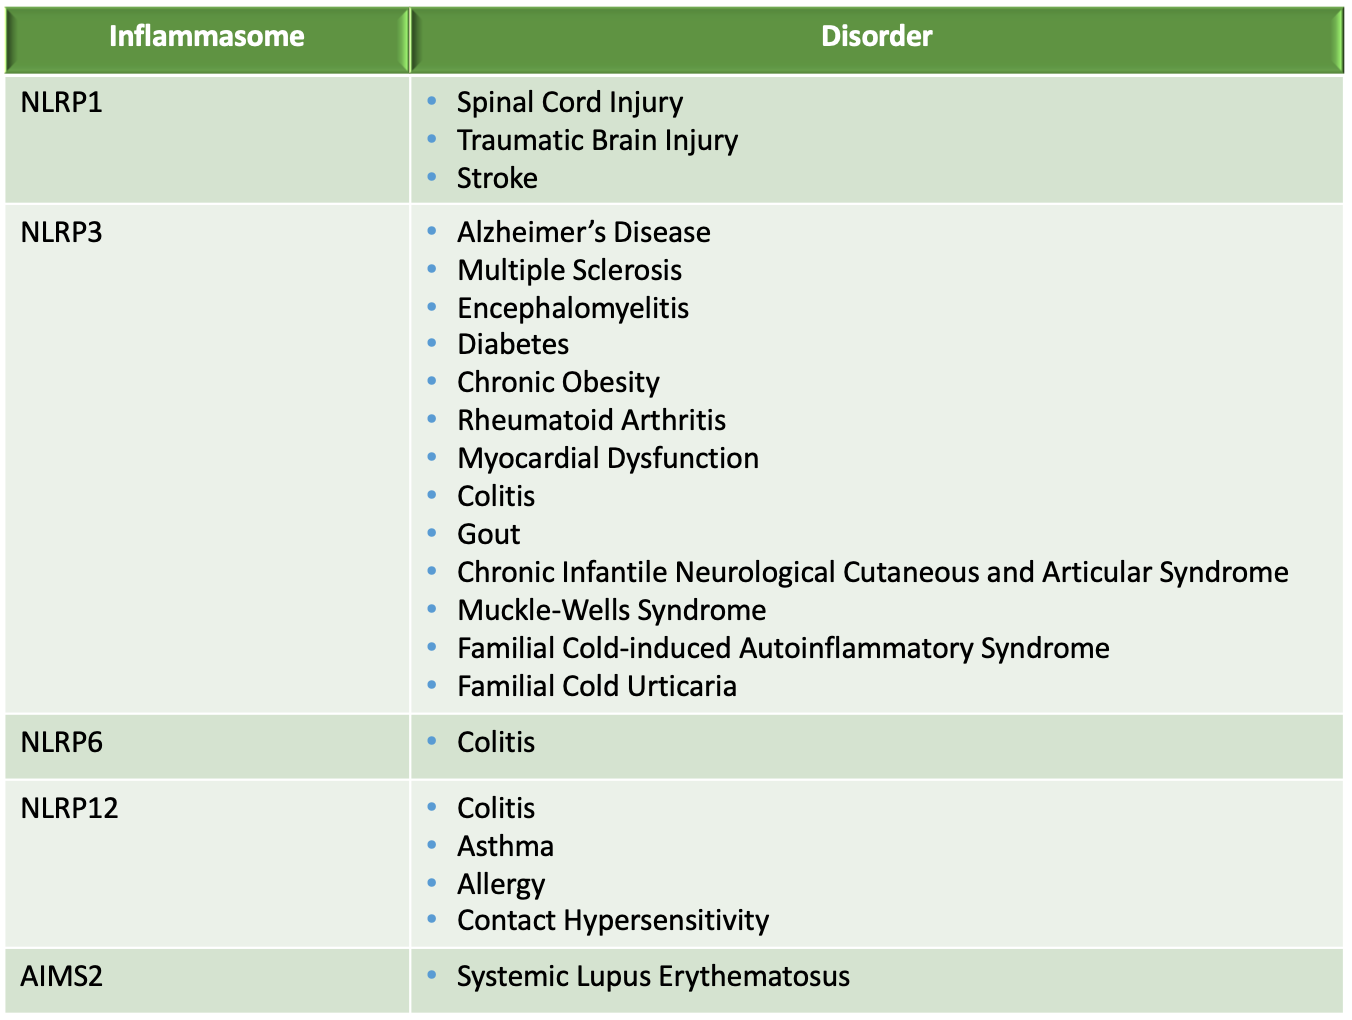 Inflammasomes Table